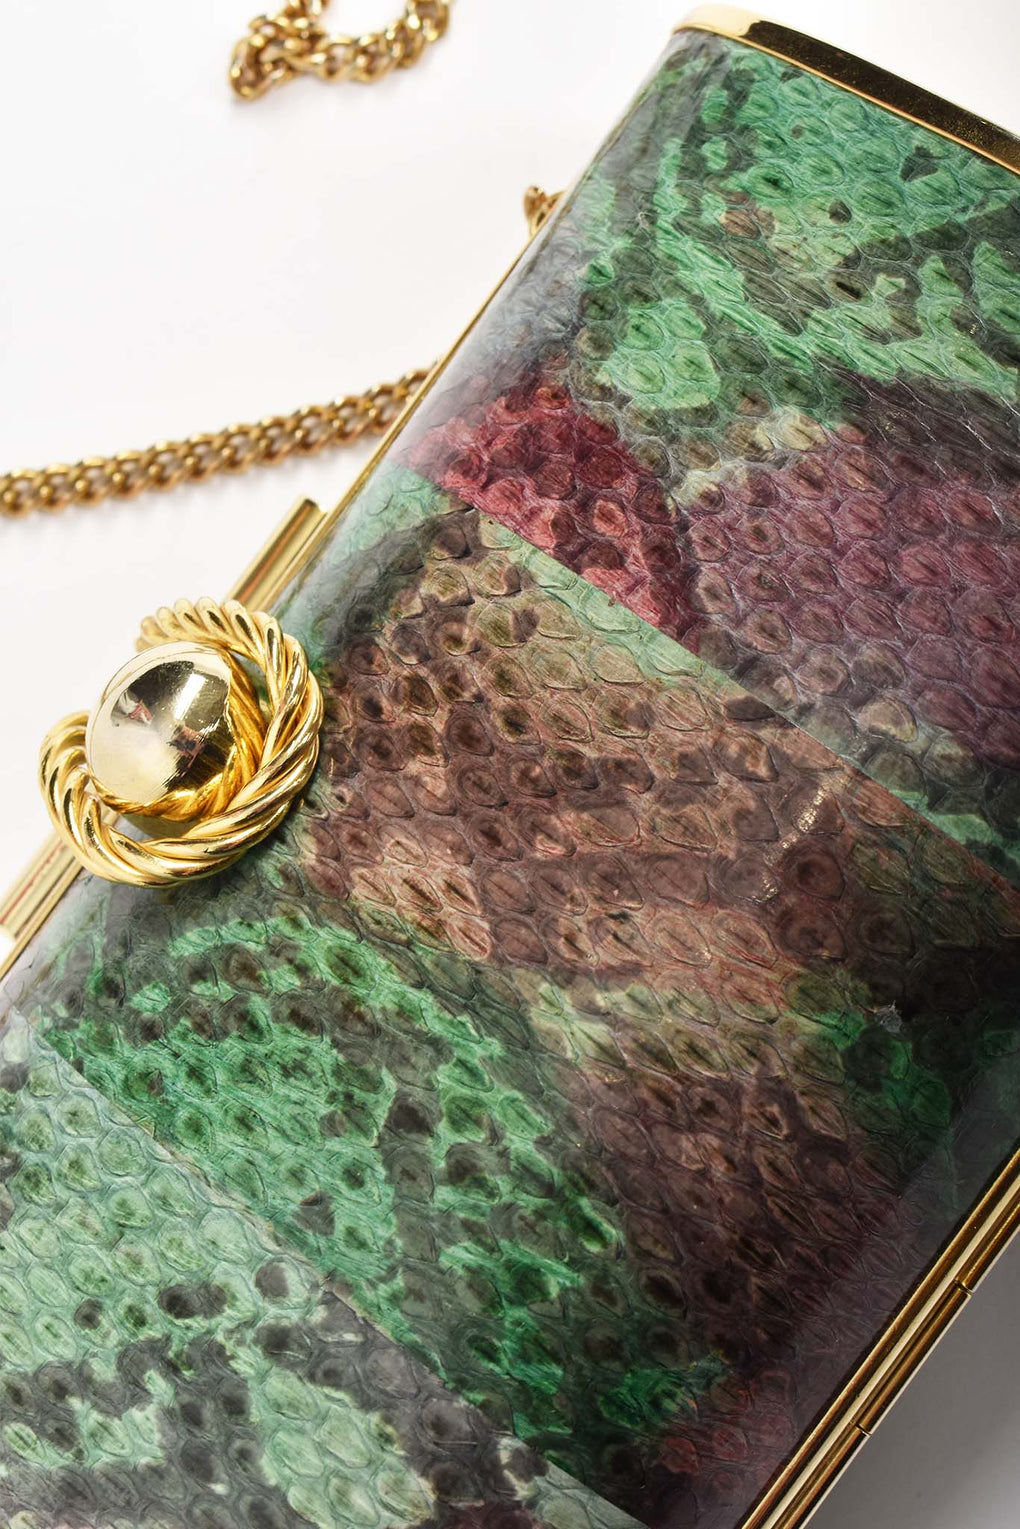 Snakeskin printed 80's clutch bag